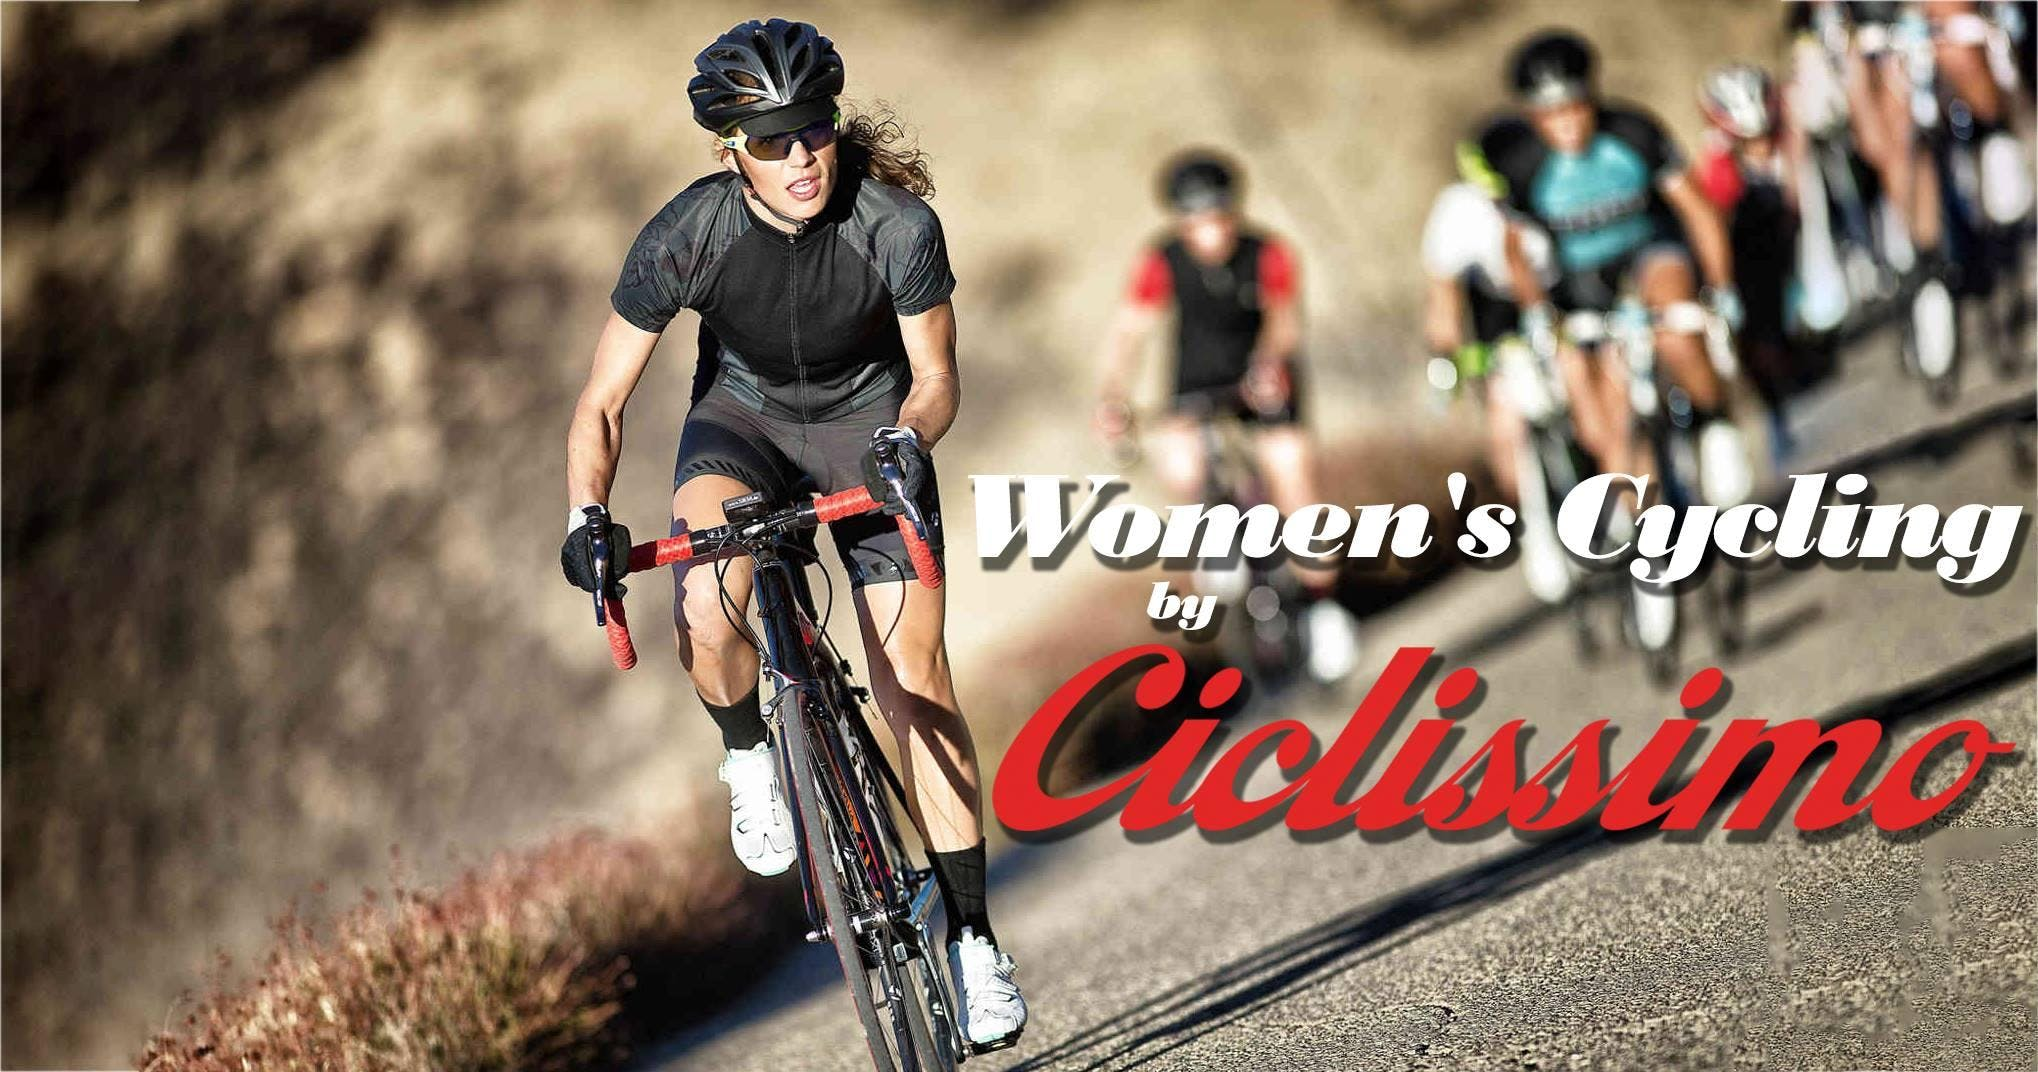 Women's Cycling by Ciclissimo